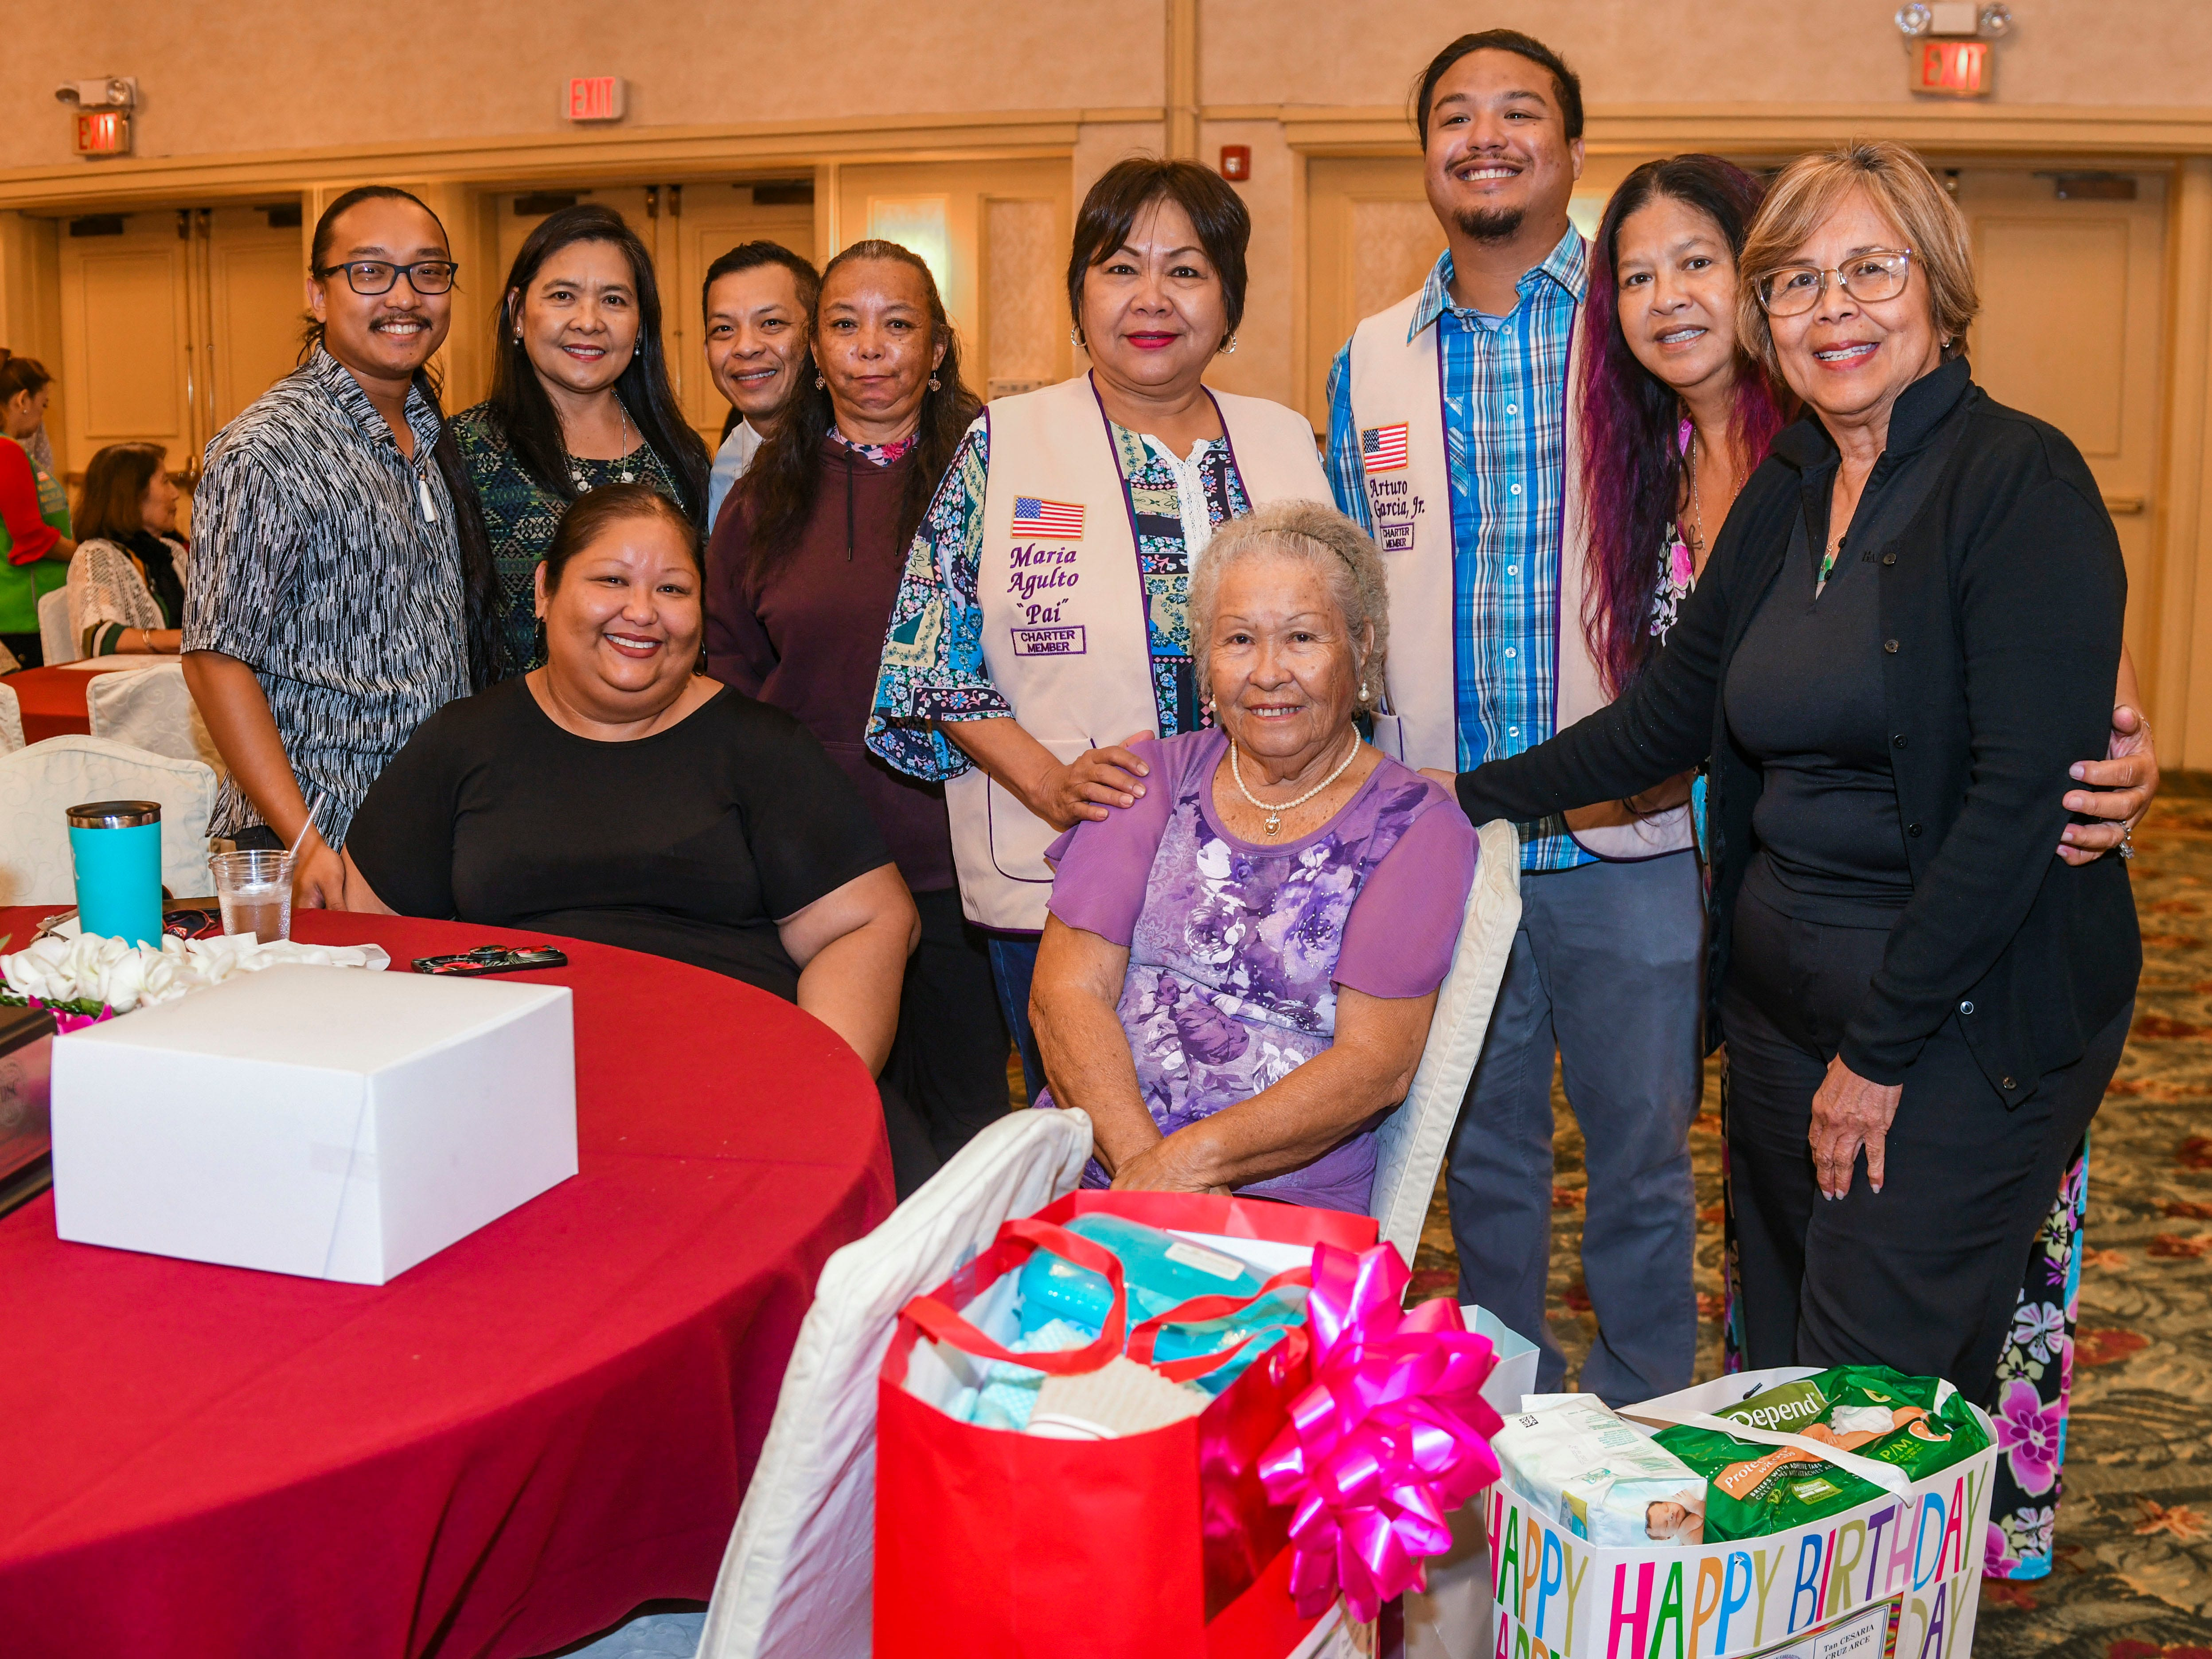 Family representatives for centenarian Cesaria Cruz Arce is presented with gifts for her from the Guanhan Isan Famagu'on Lions Club during the 2019 Centenarian Celebration at the Pacific Star Resort & Spa in Tumon on Thursday, May 9, 2019. The event, hosted by the Department of Public Health and Social Services, was held in conjunction with Senior Citizens Month.